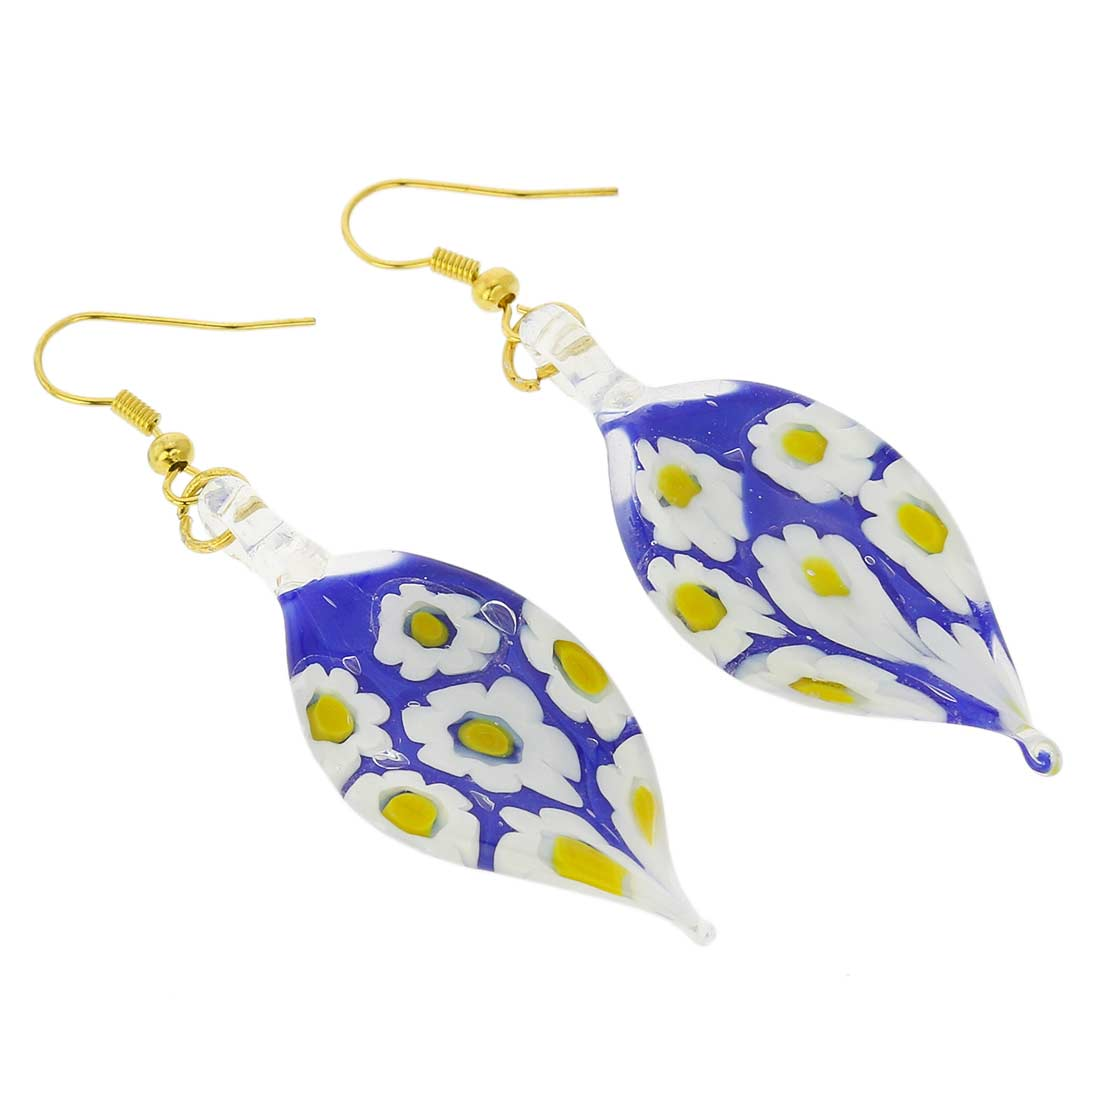 Blue Daisy Leaf-shaped earrings